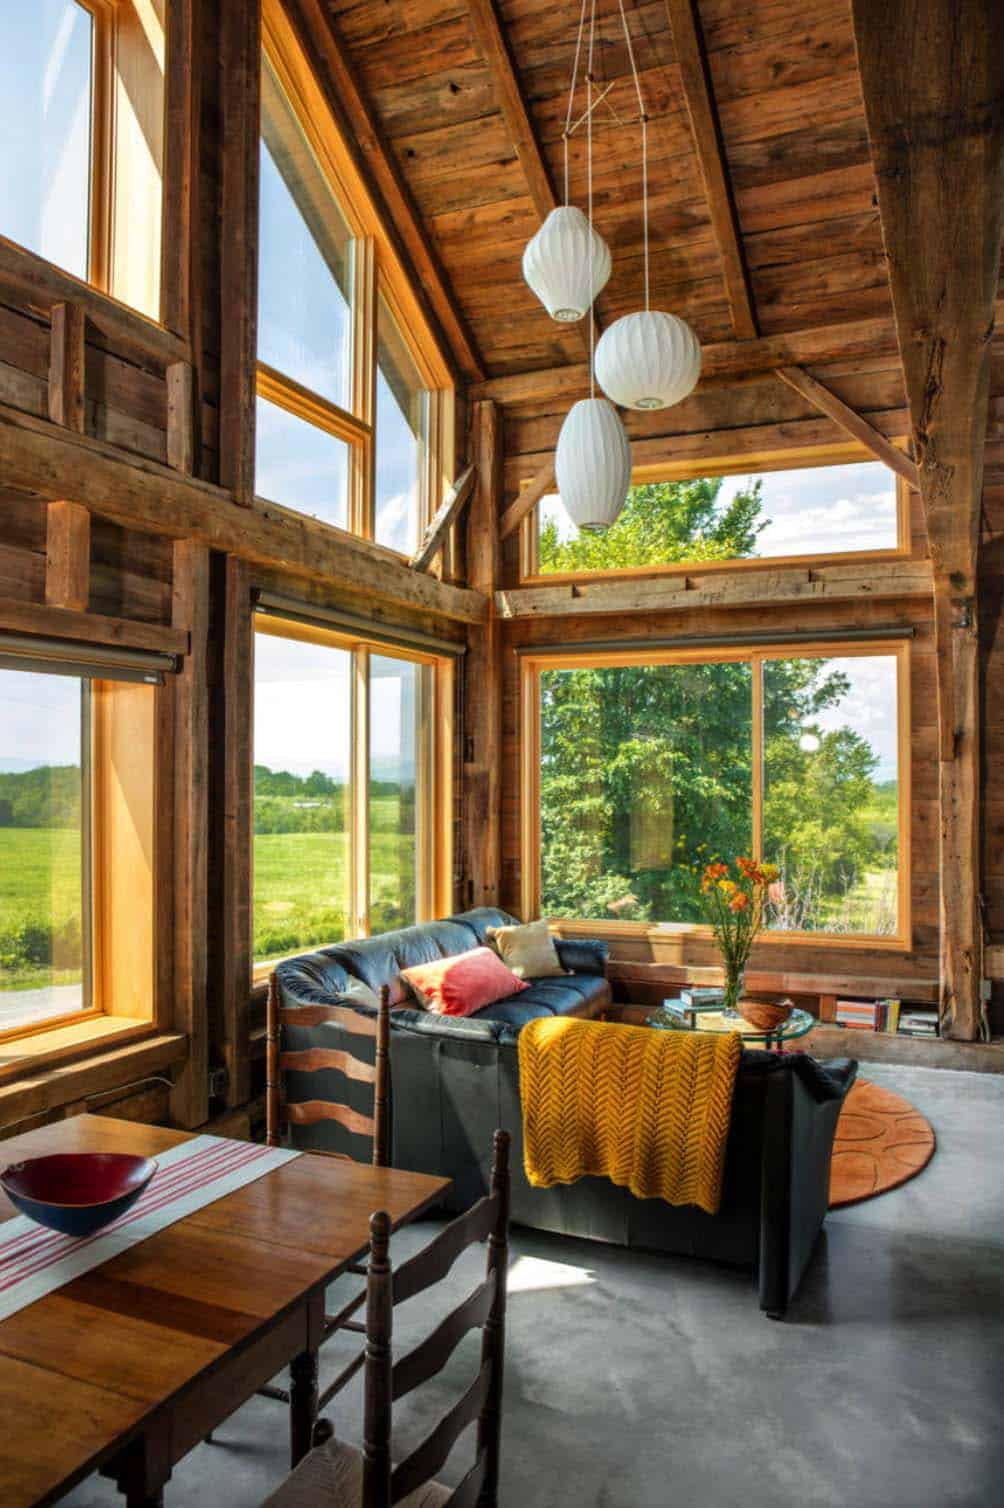 Rustic Barn Guesthouse-Joan Heaton Architects-06-1 Kindesign